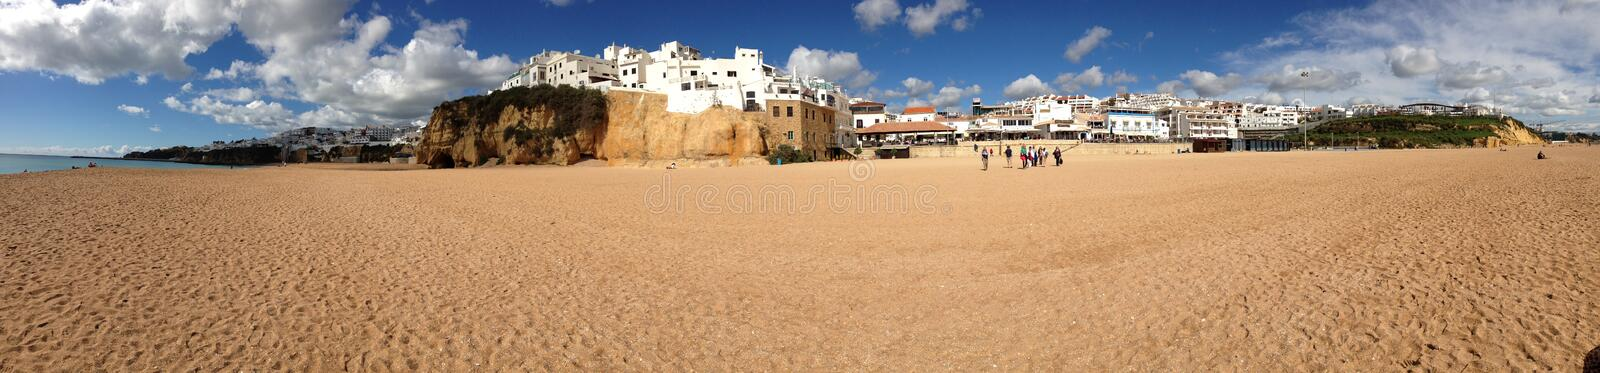 Panorama from the beach in Portugal royalty free stock photo